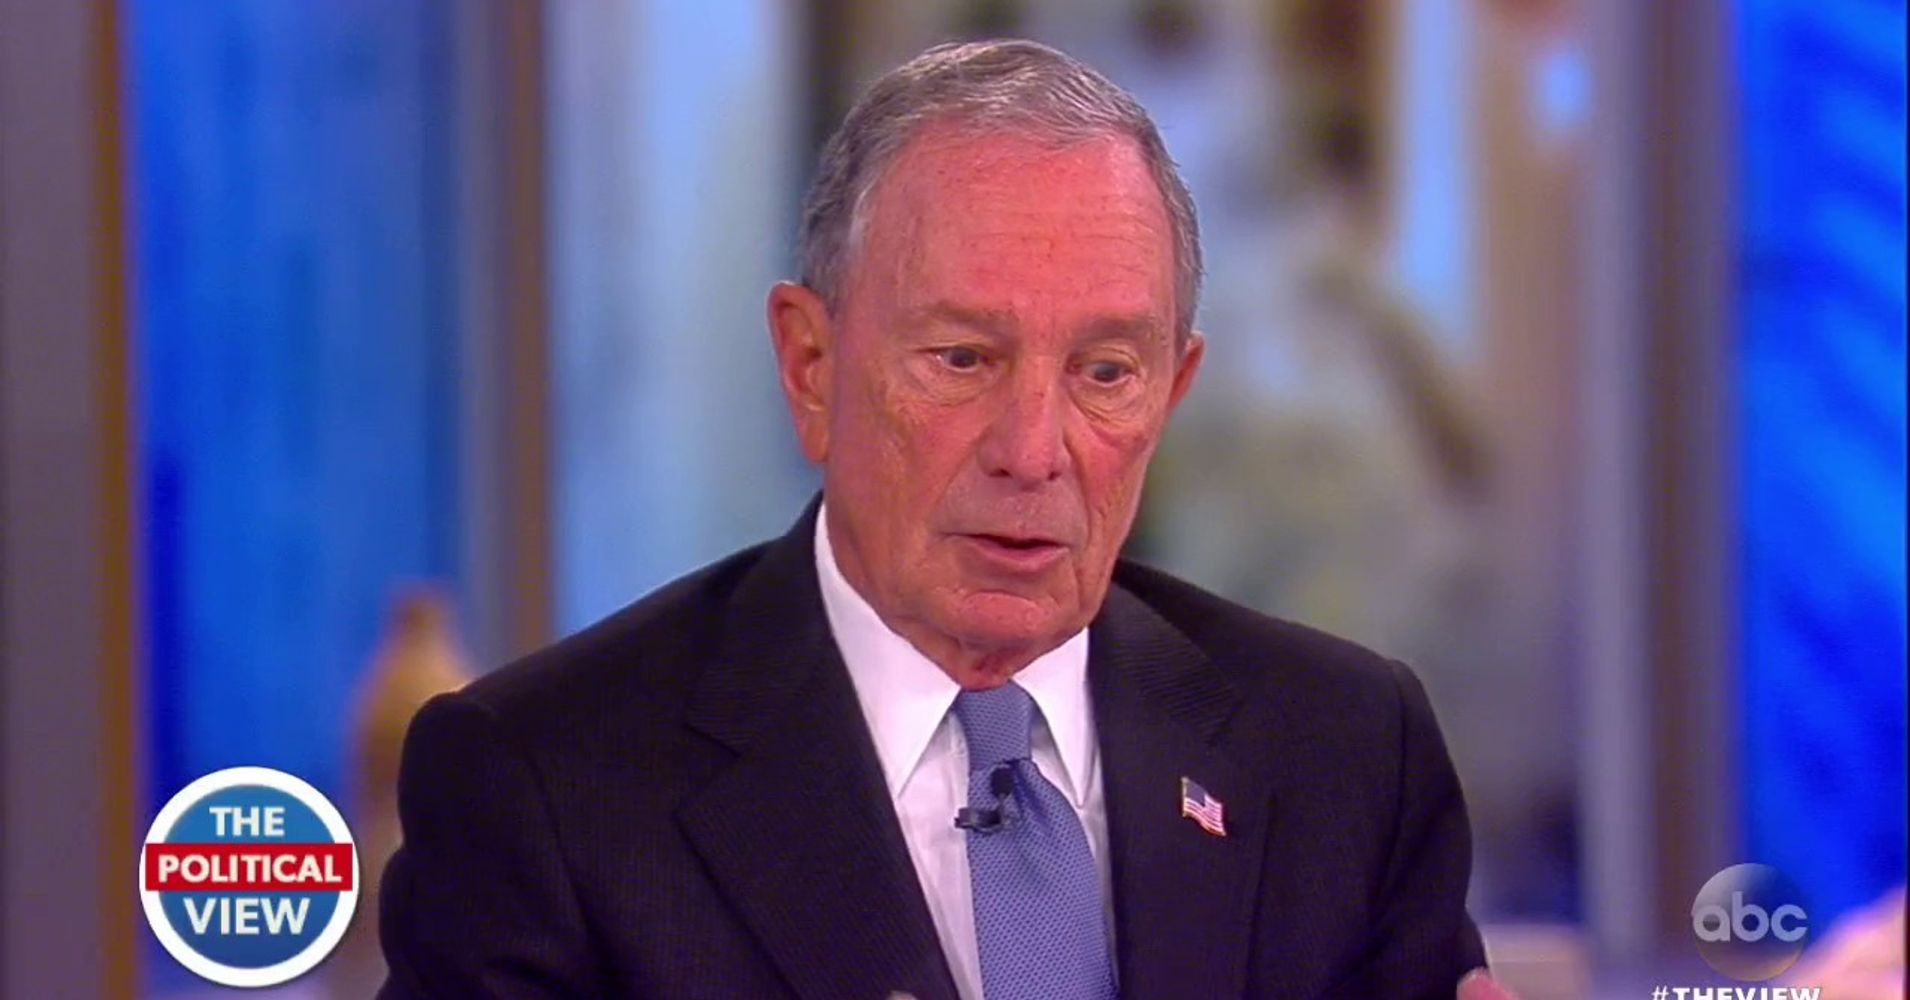 Mike Bloomberg's Call To Support a Lying President Is Beyond Naive